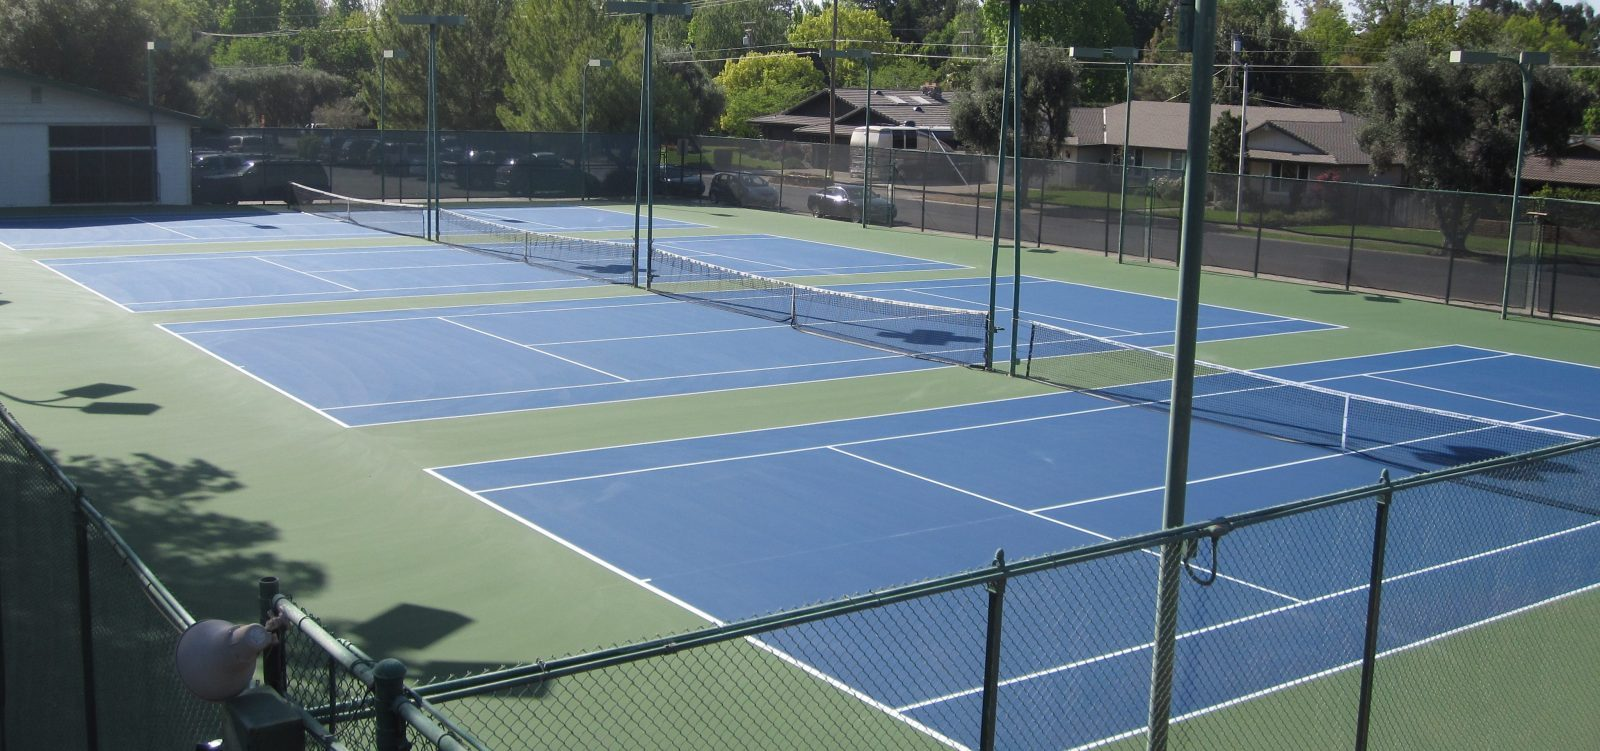 Tennis Courts 1-4